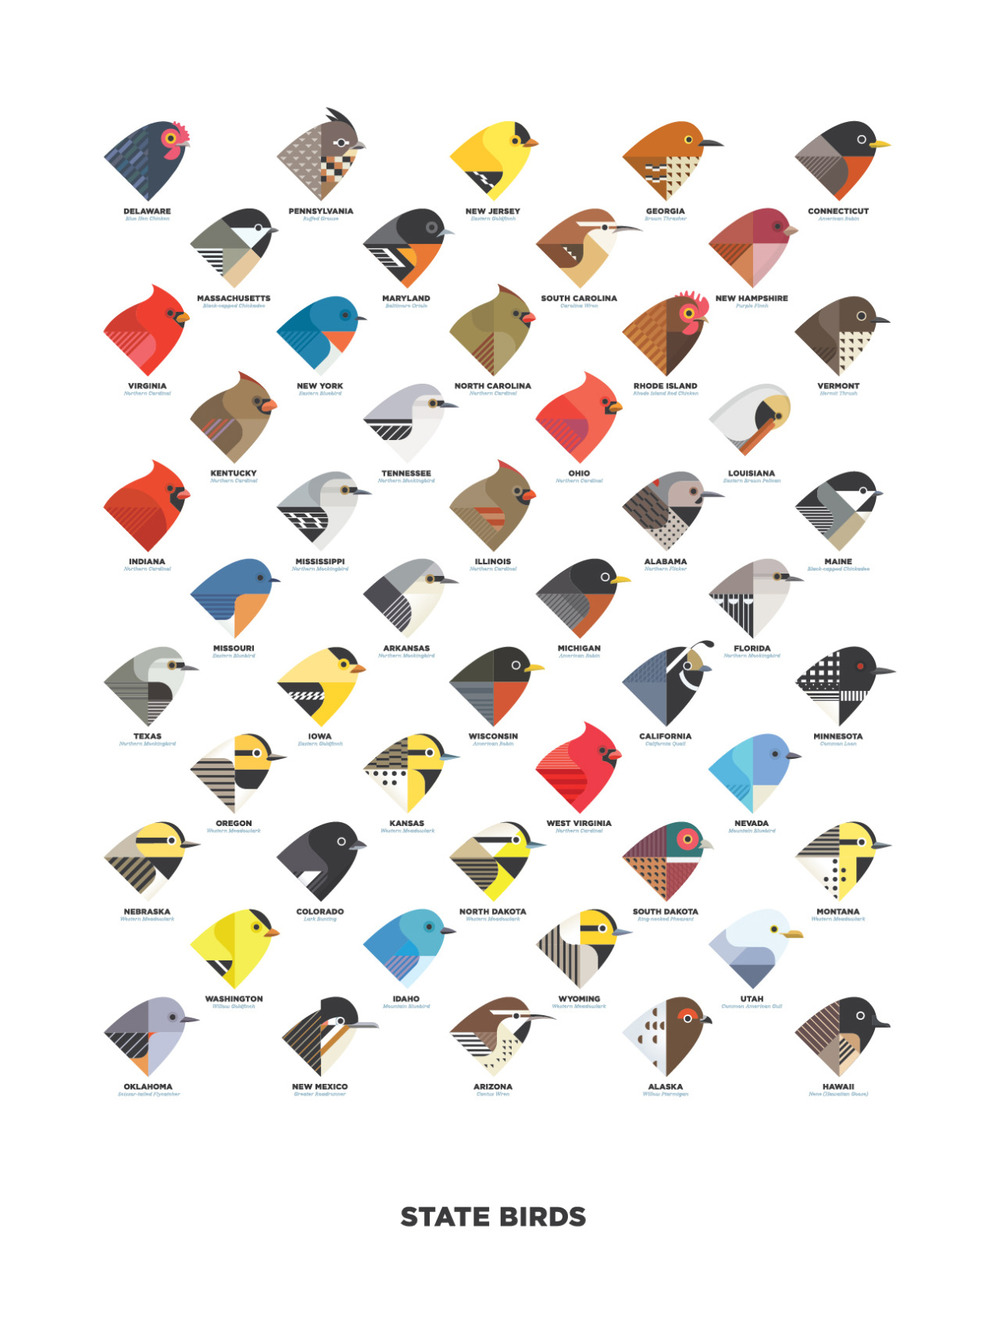 designersof: Digital illustration of the 50 state birds, ordered by their state's admittance into the Union. How to achieve non-generica birds.